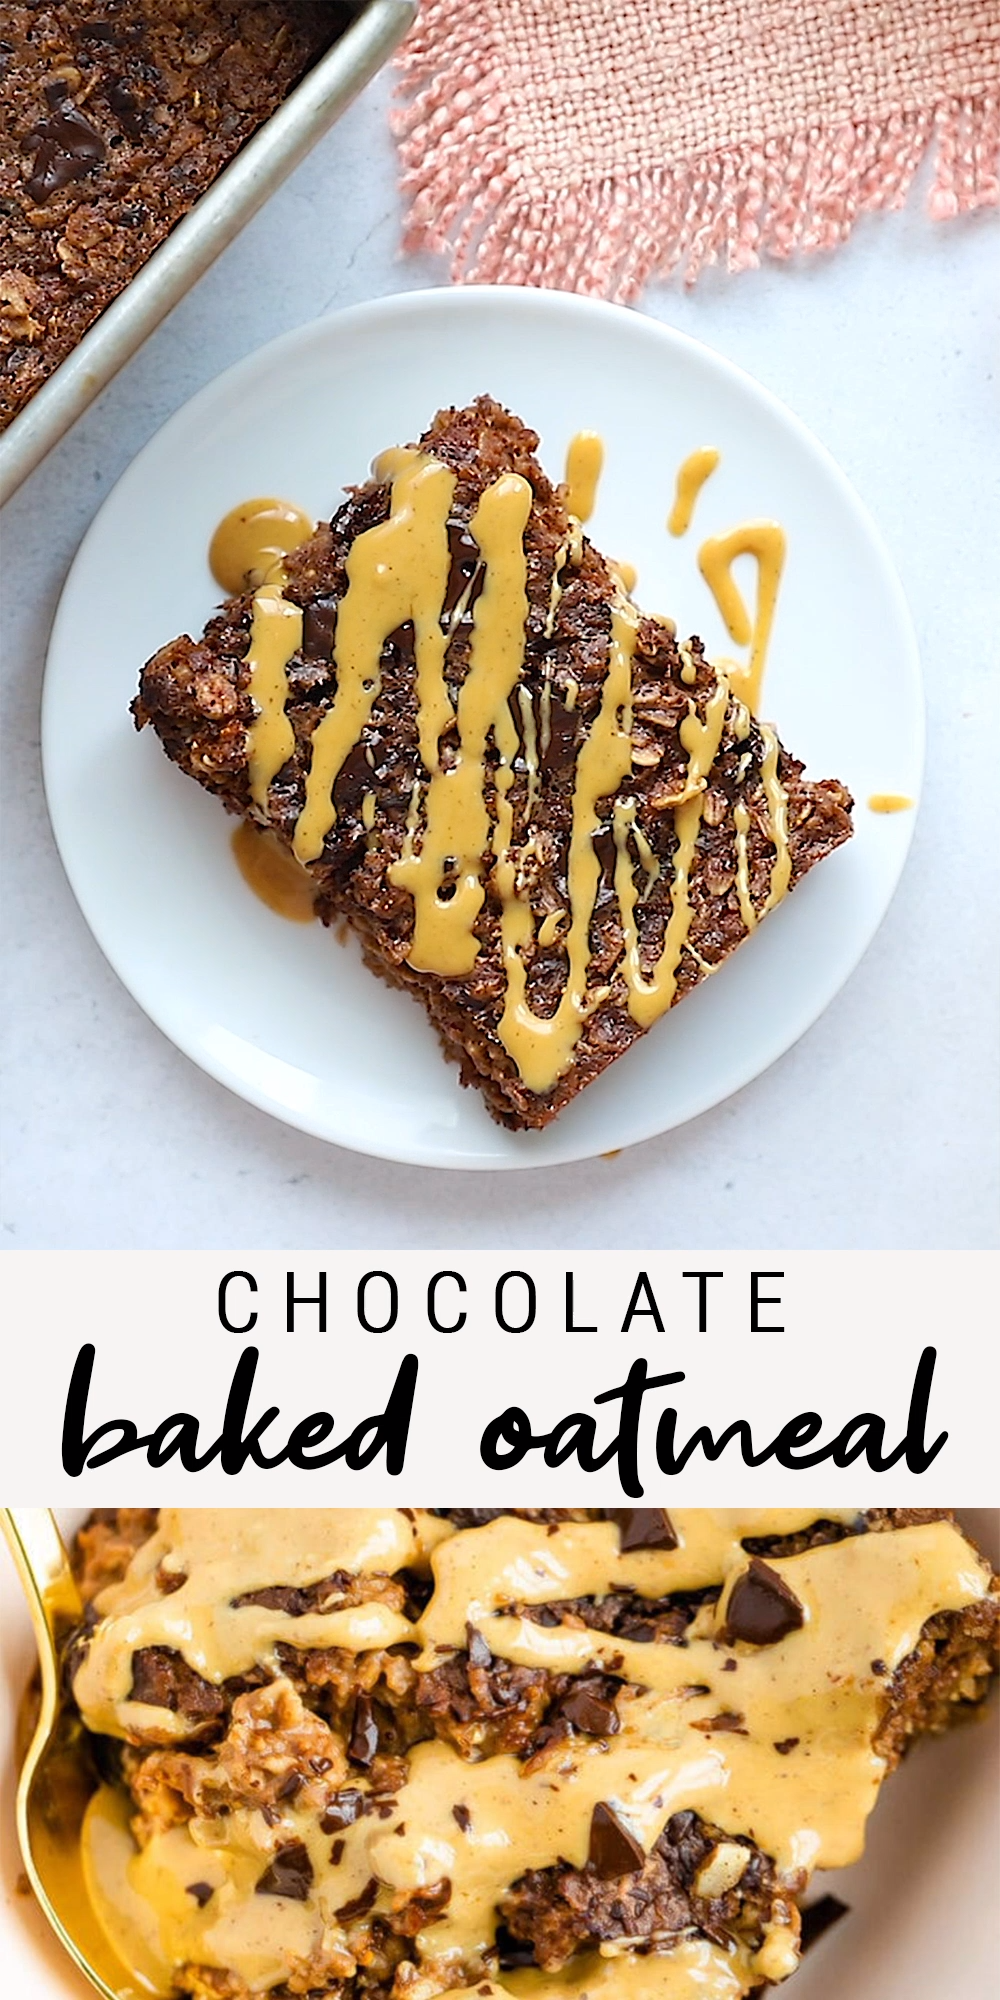 Healthy Chocolate Peanut Butter Baked Oatmeal | Vegan + Gluten-Free